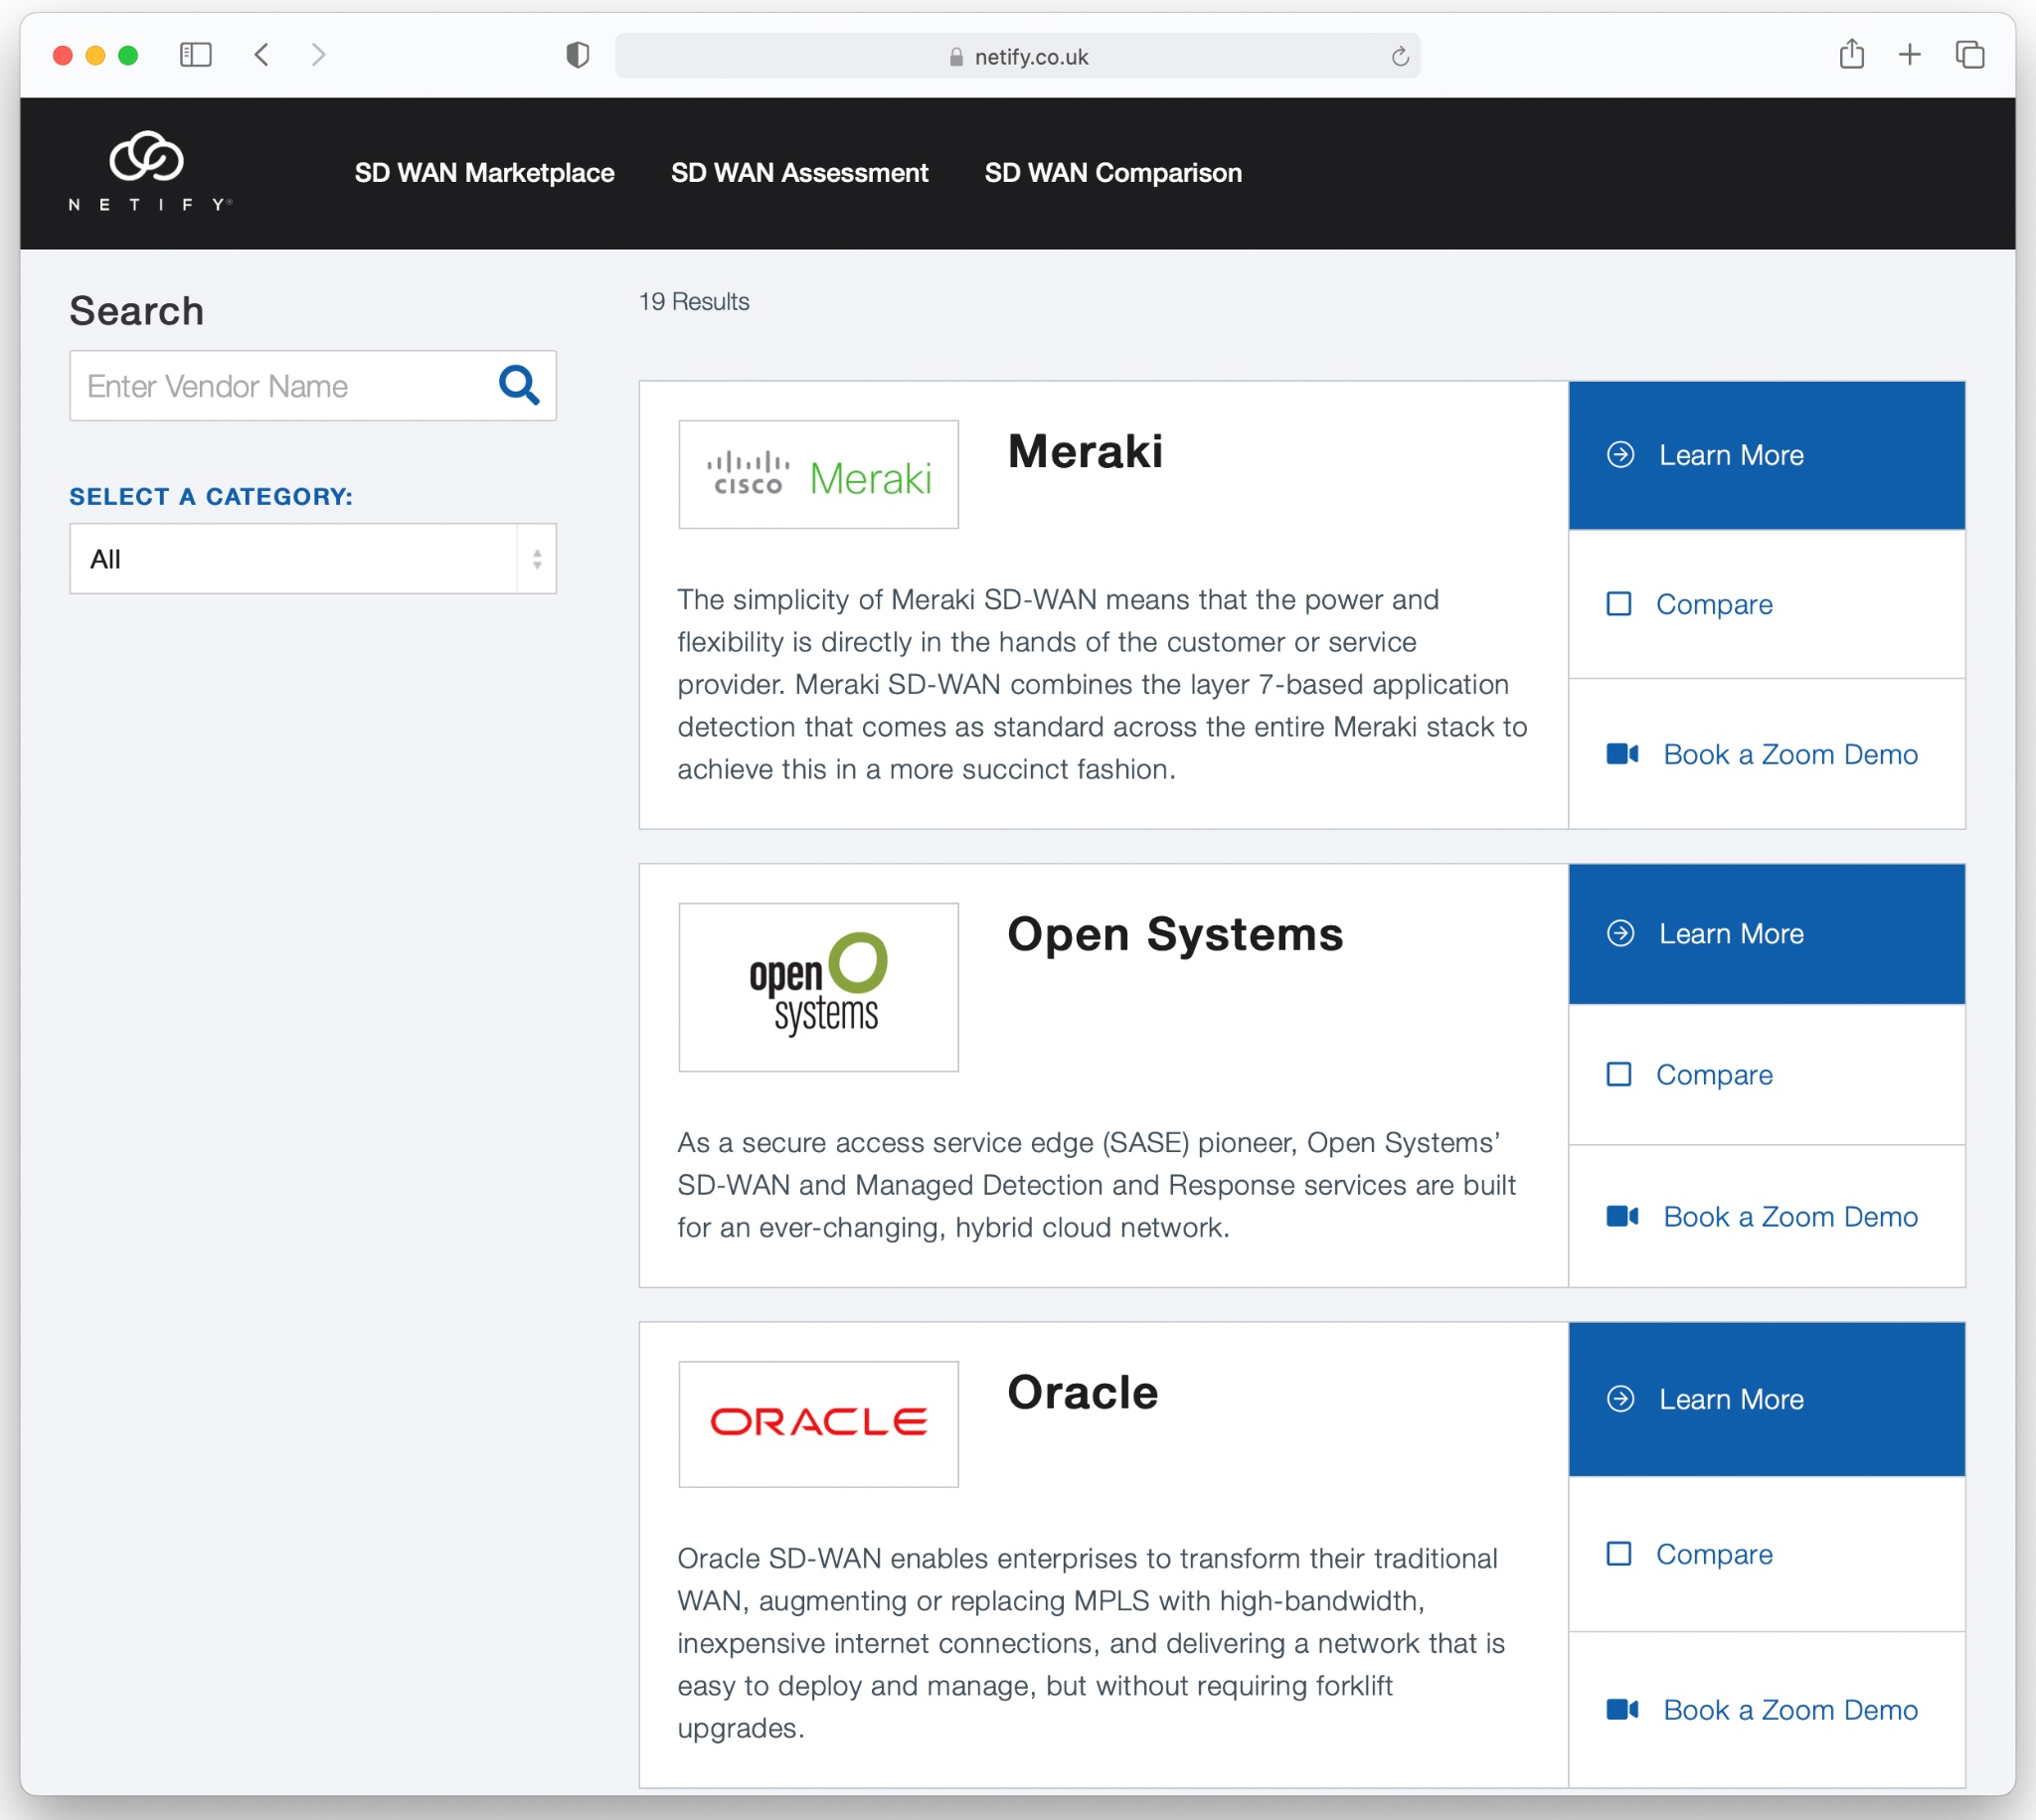 The Netify SD WAN and SASE Marketplace